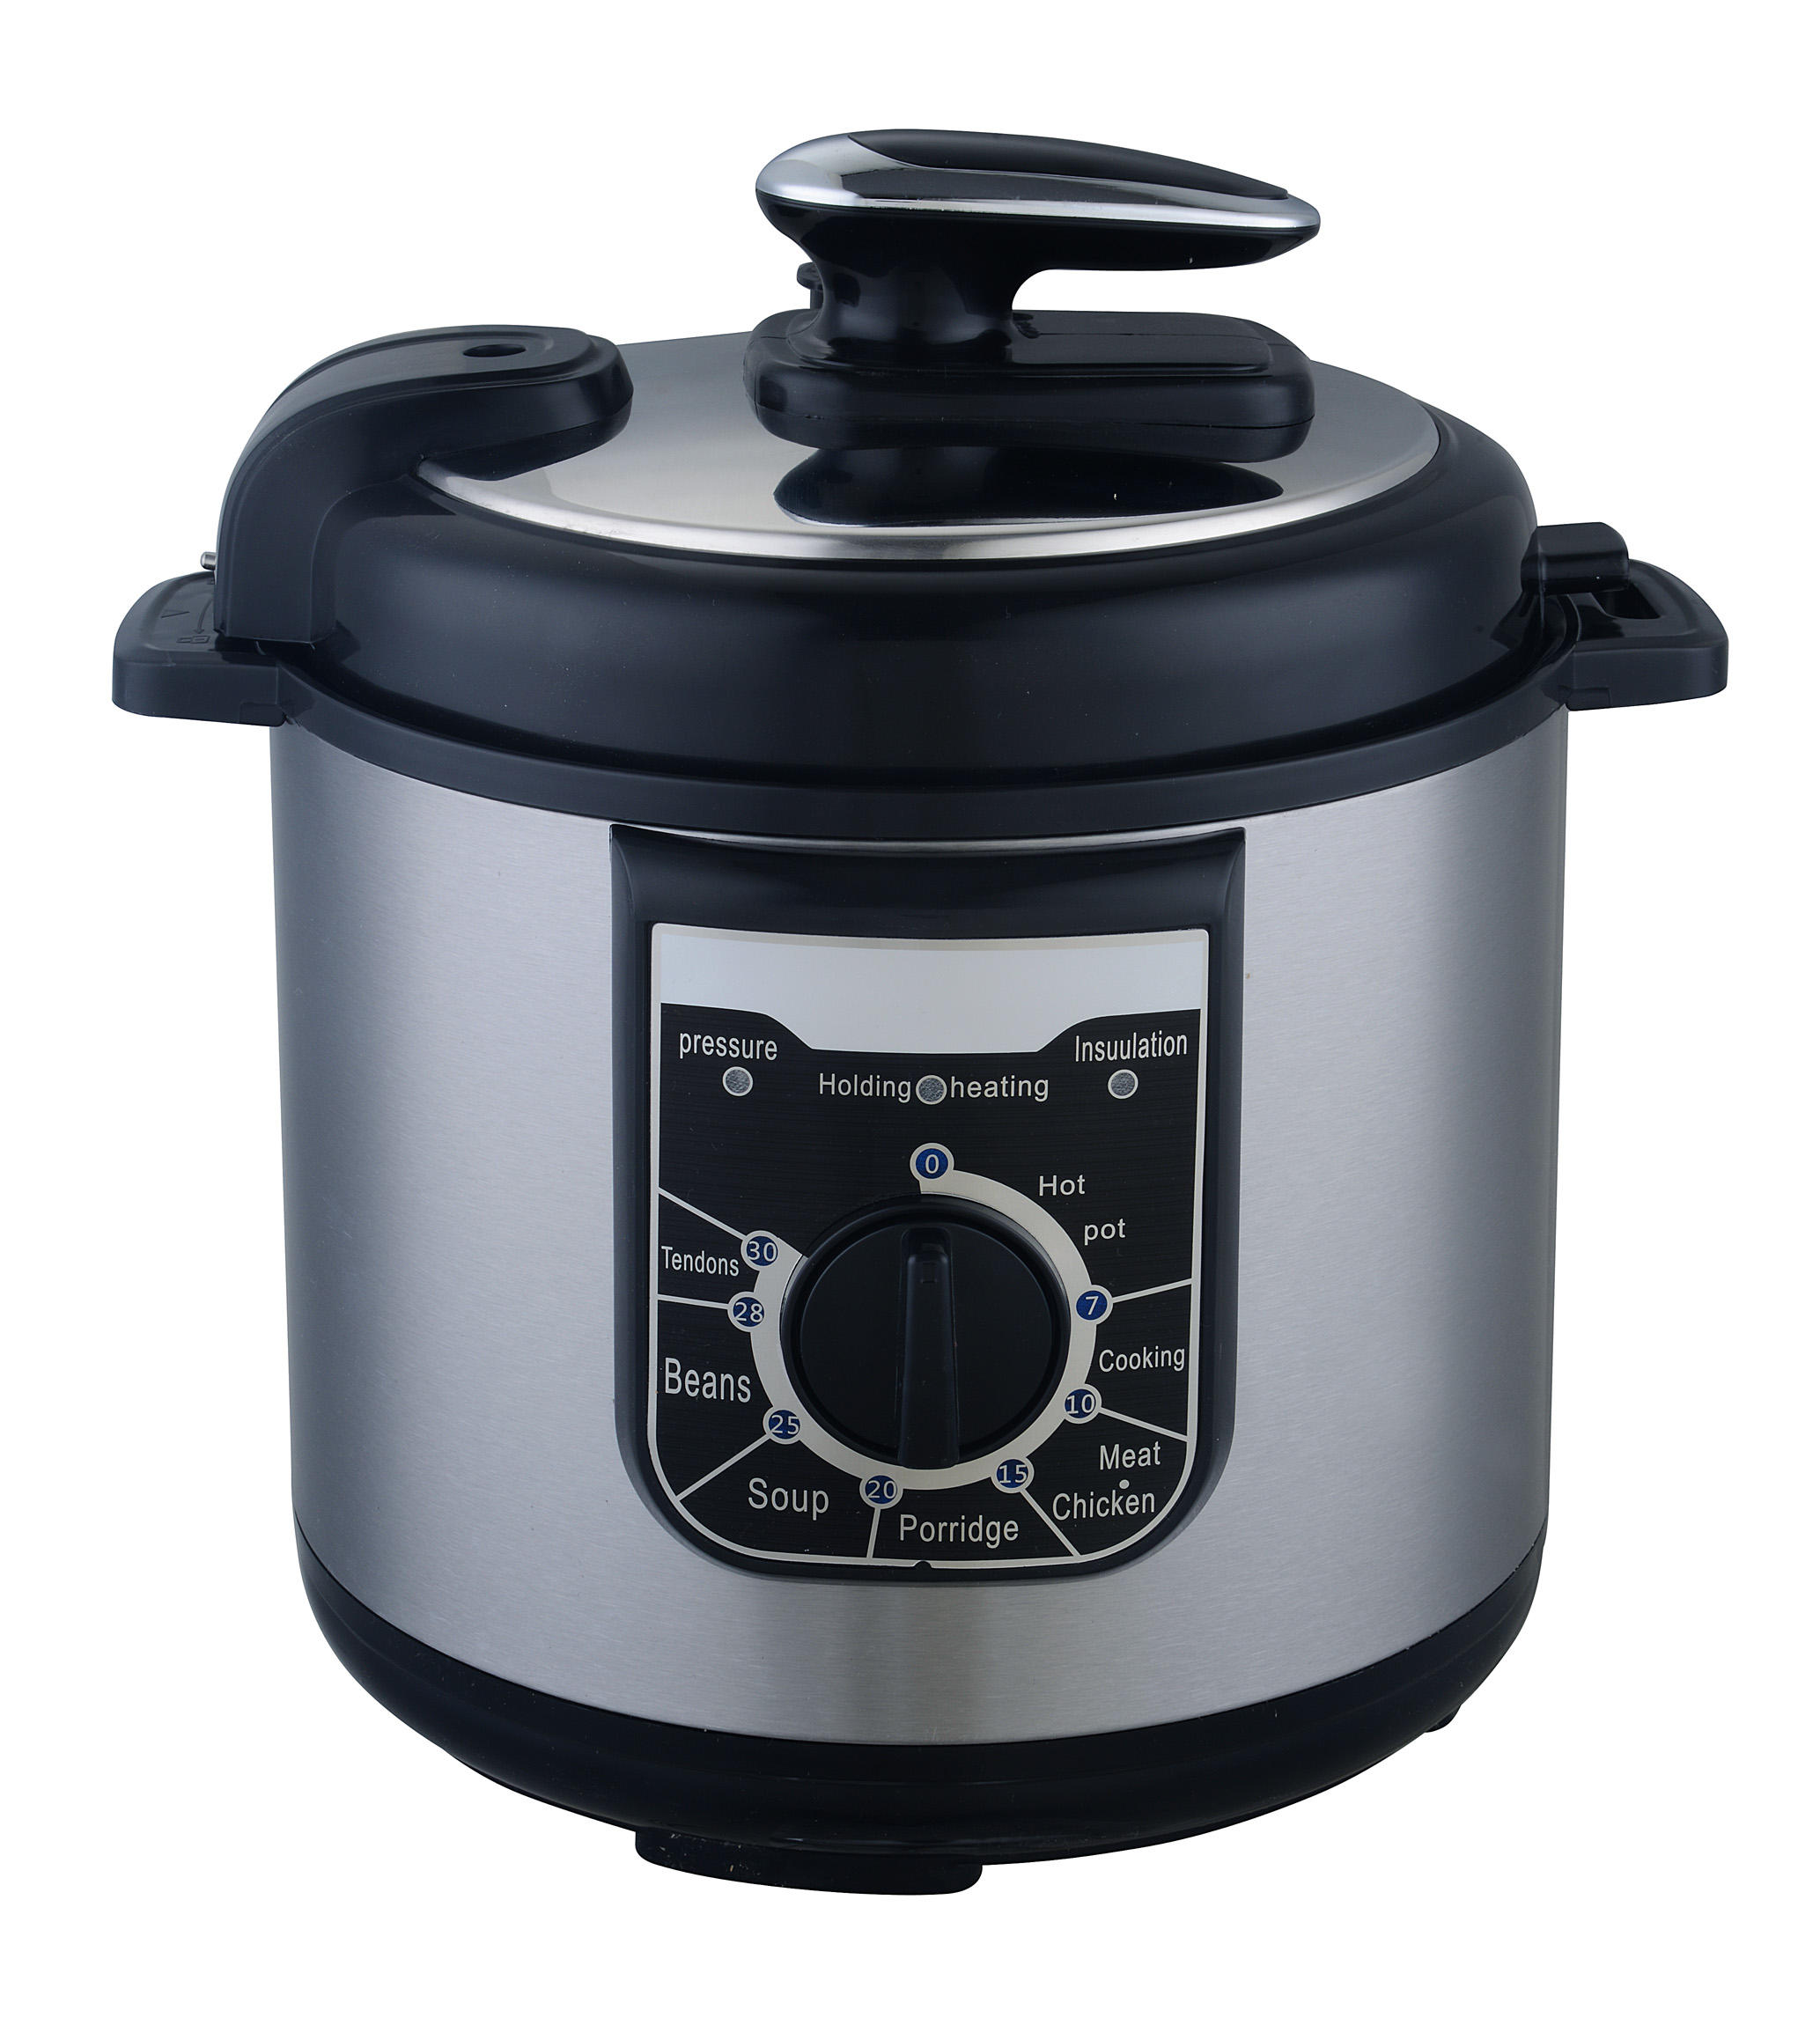 5L Vietnam Pressure Cooker Electric Pressure Cooker Stainless Steel Inner Pot,Programmable Pressure Cooker Factory OEM